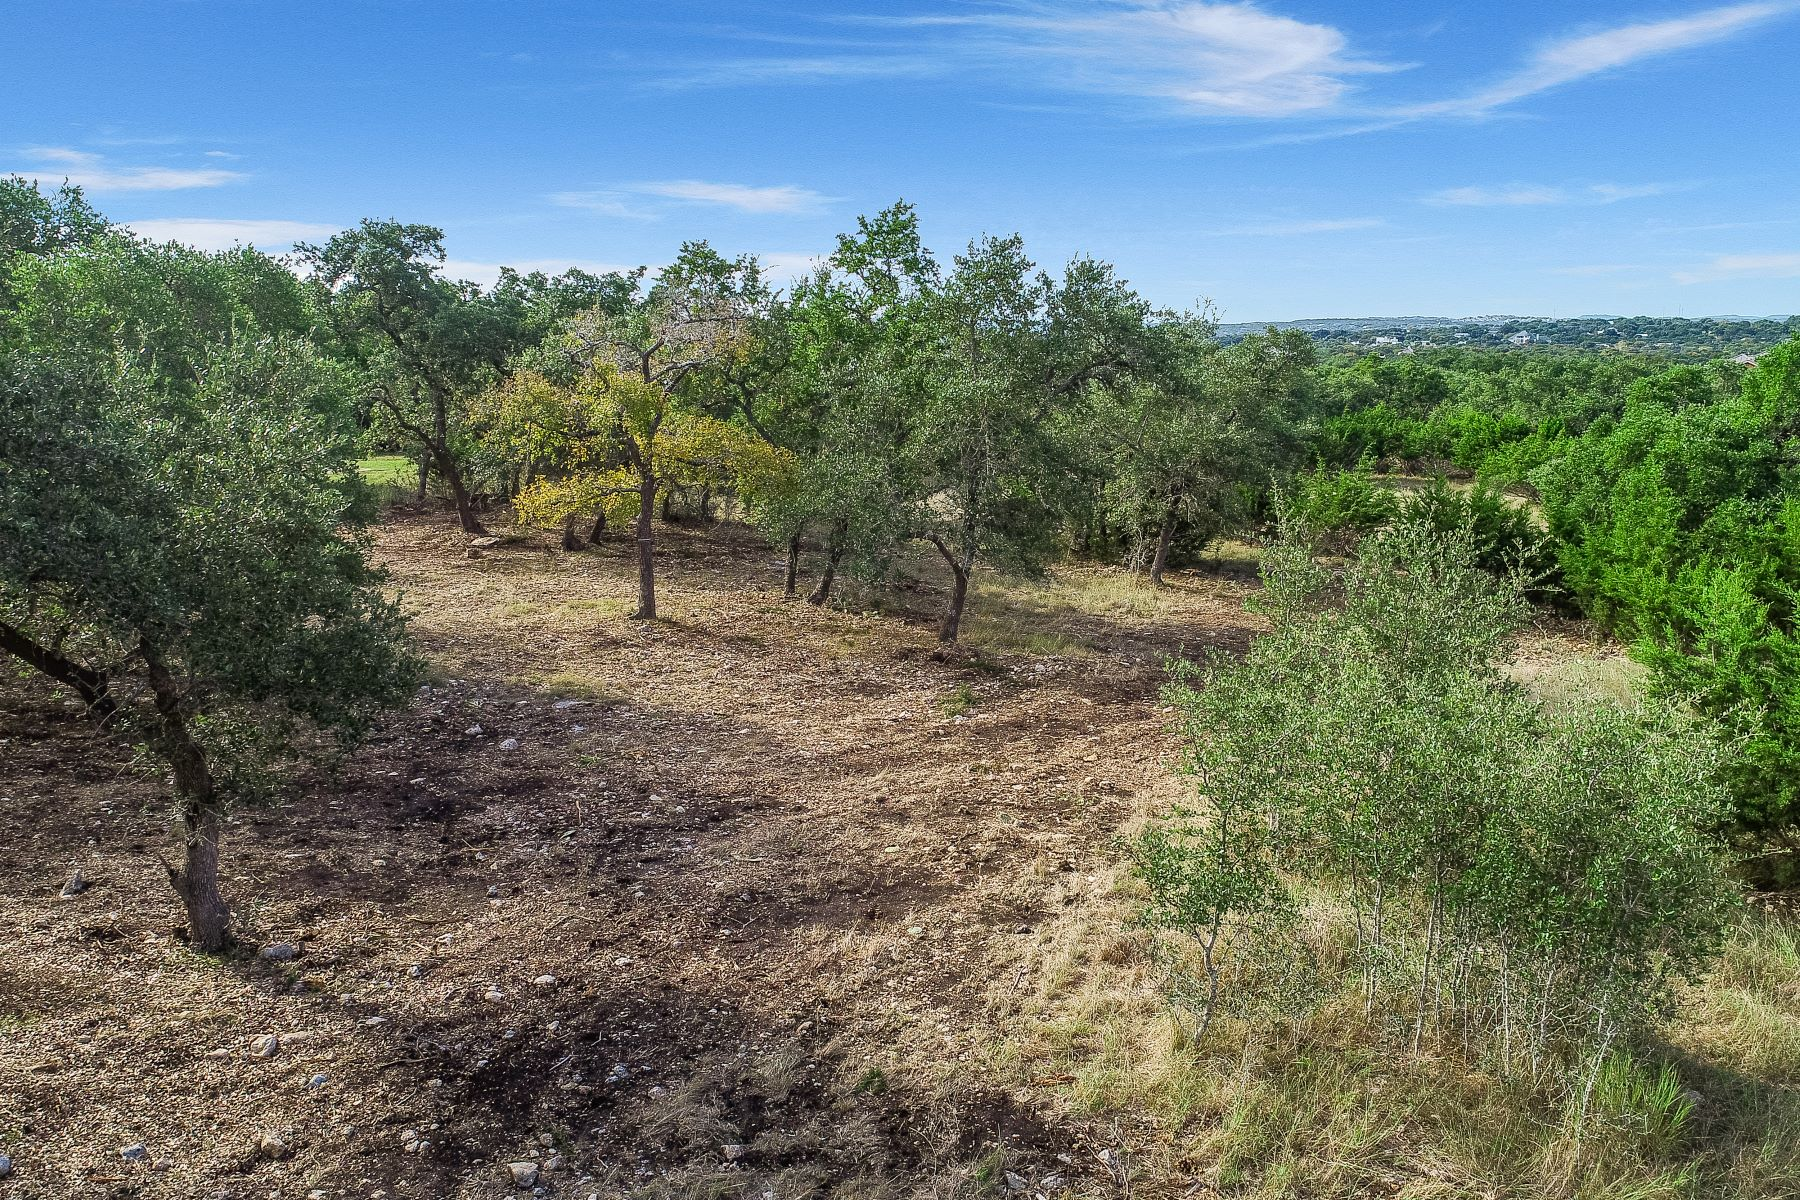 Land for Sale at Cul-de-sac living on well-established street Sendero Point Fair Oaks Ranch, Texas 78015 United States